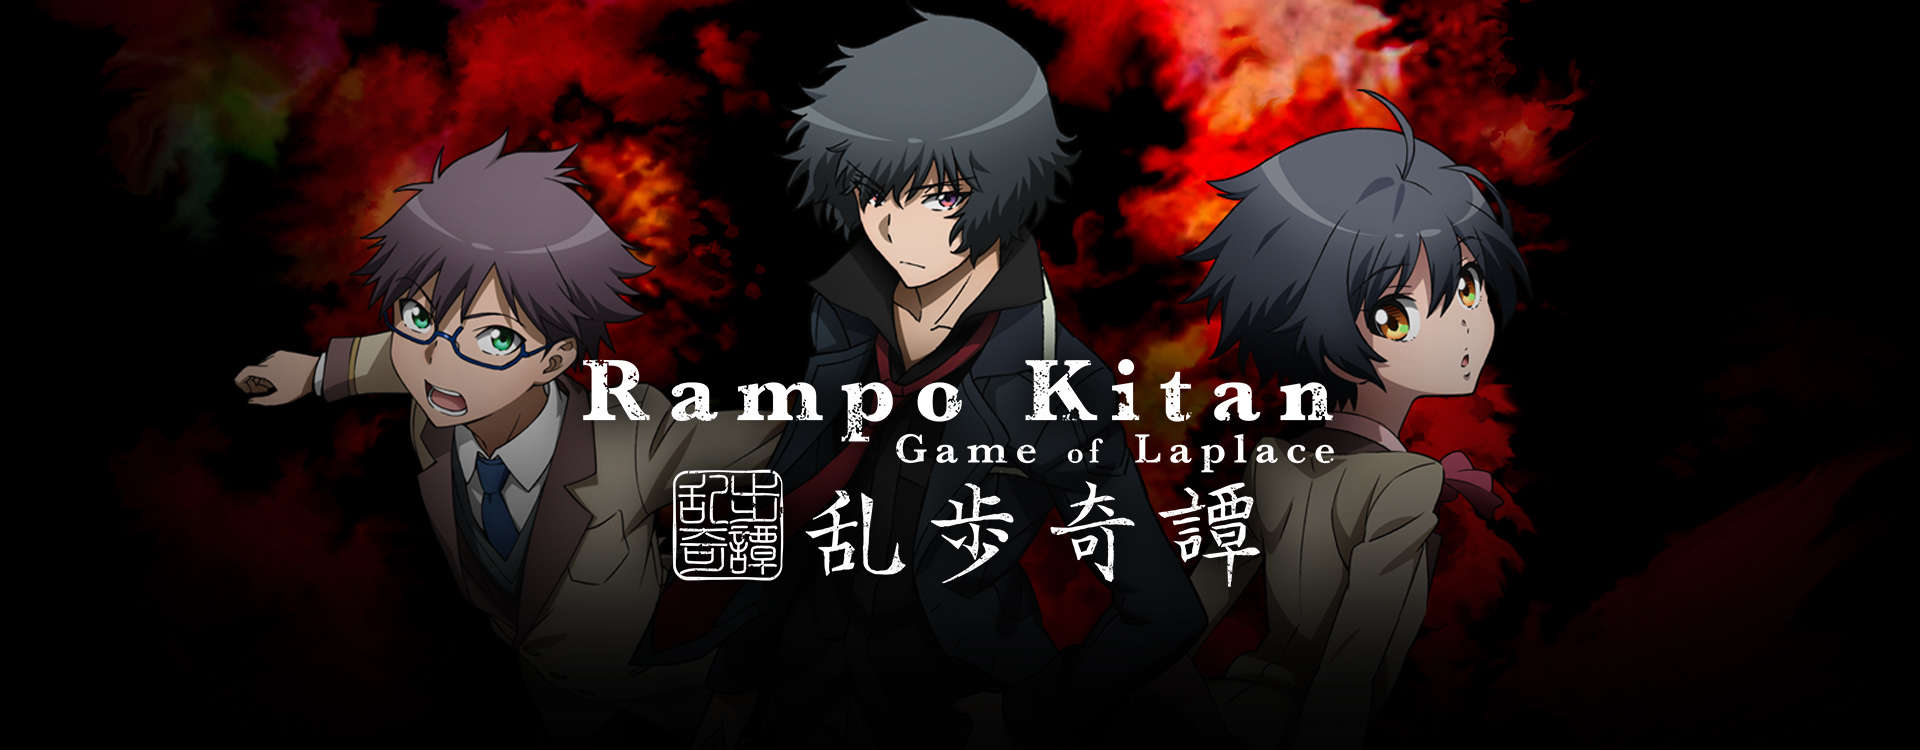 Rampo Kitan: Game of Laplace